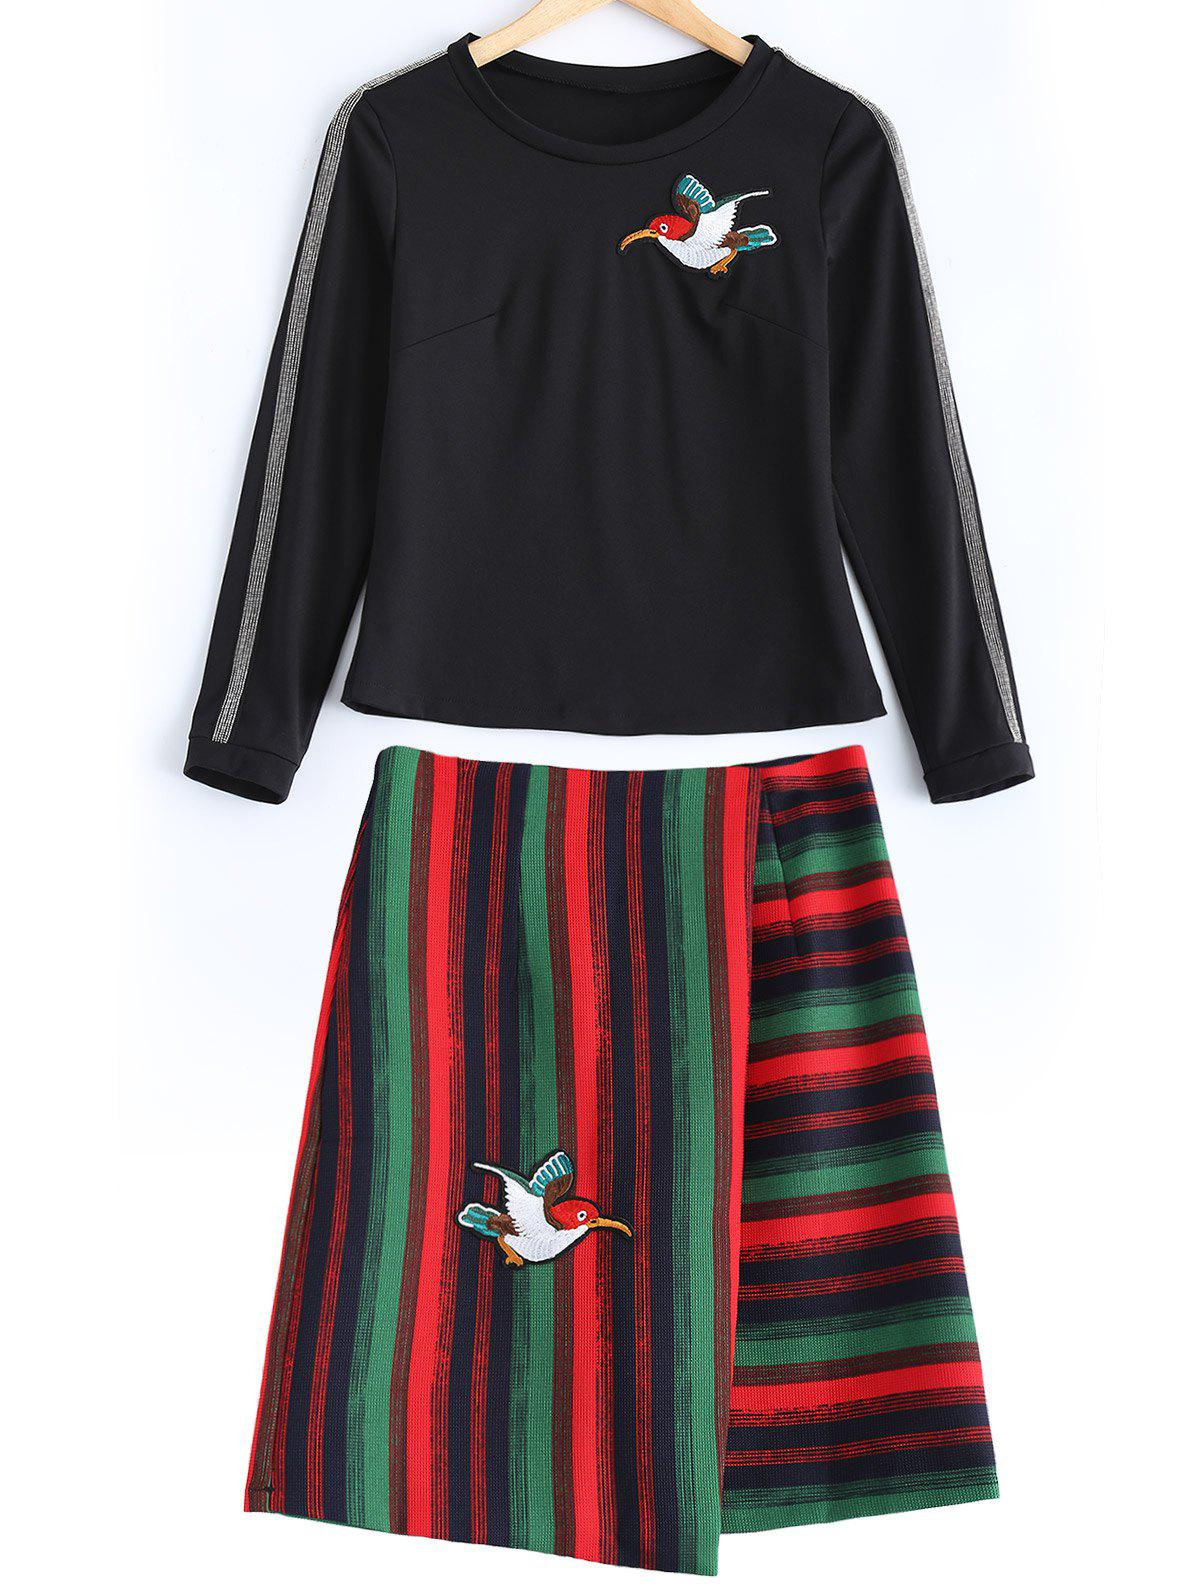 Bird Embroidered T-Shirt + High Waist Striped Skirt Twinset - RED L